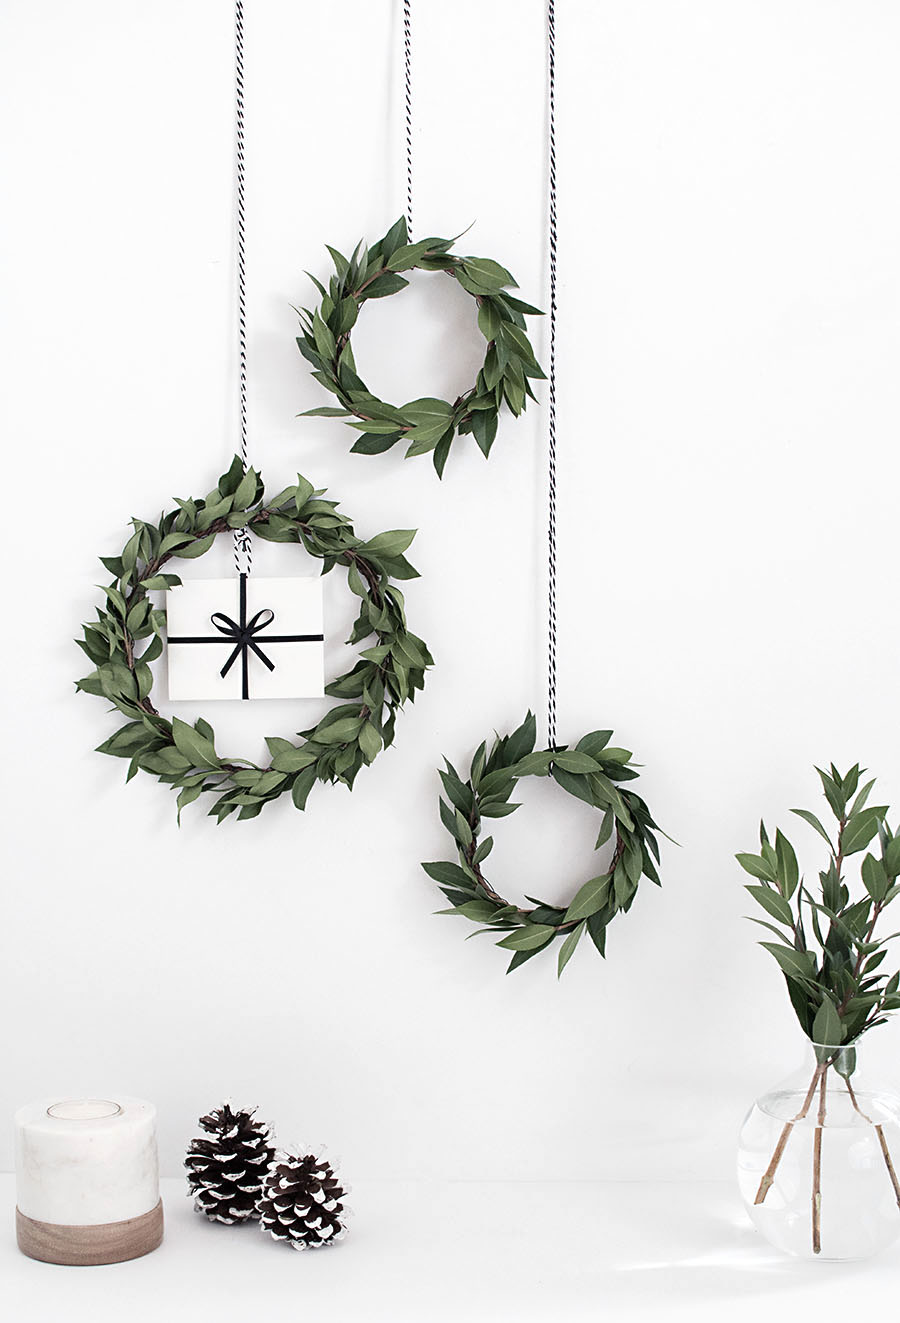 DIY-gift-card-mini-wreath-Homey-Oh-My4.jpg